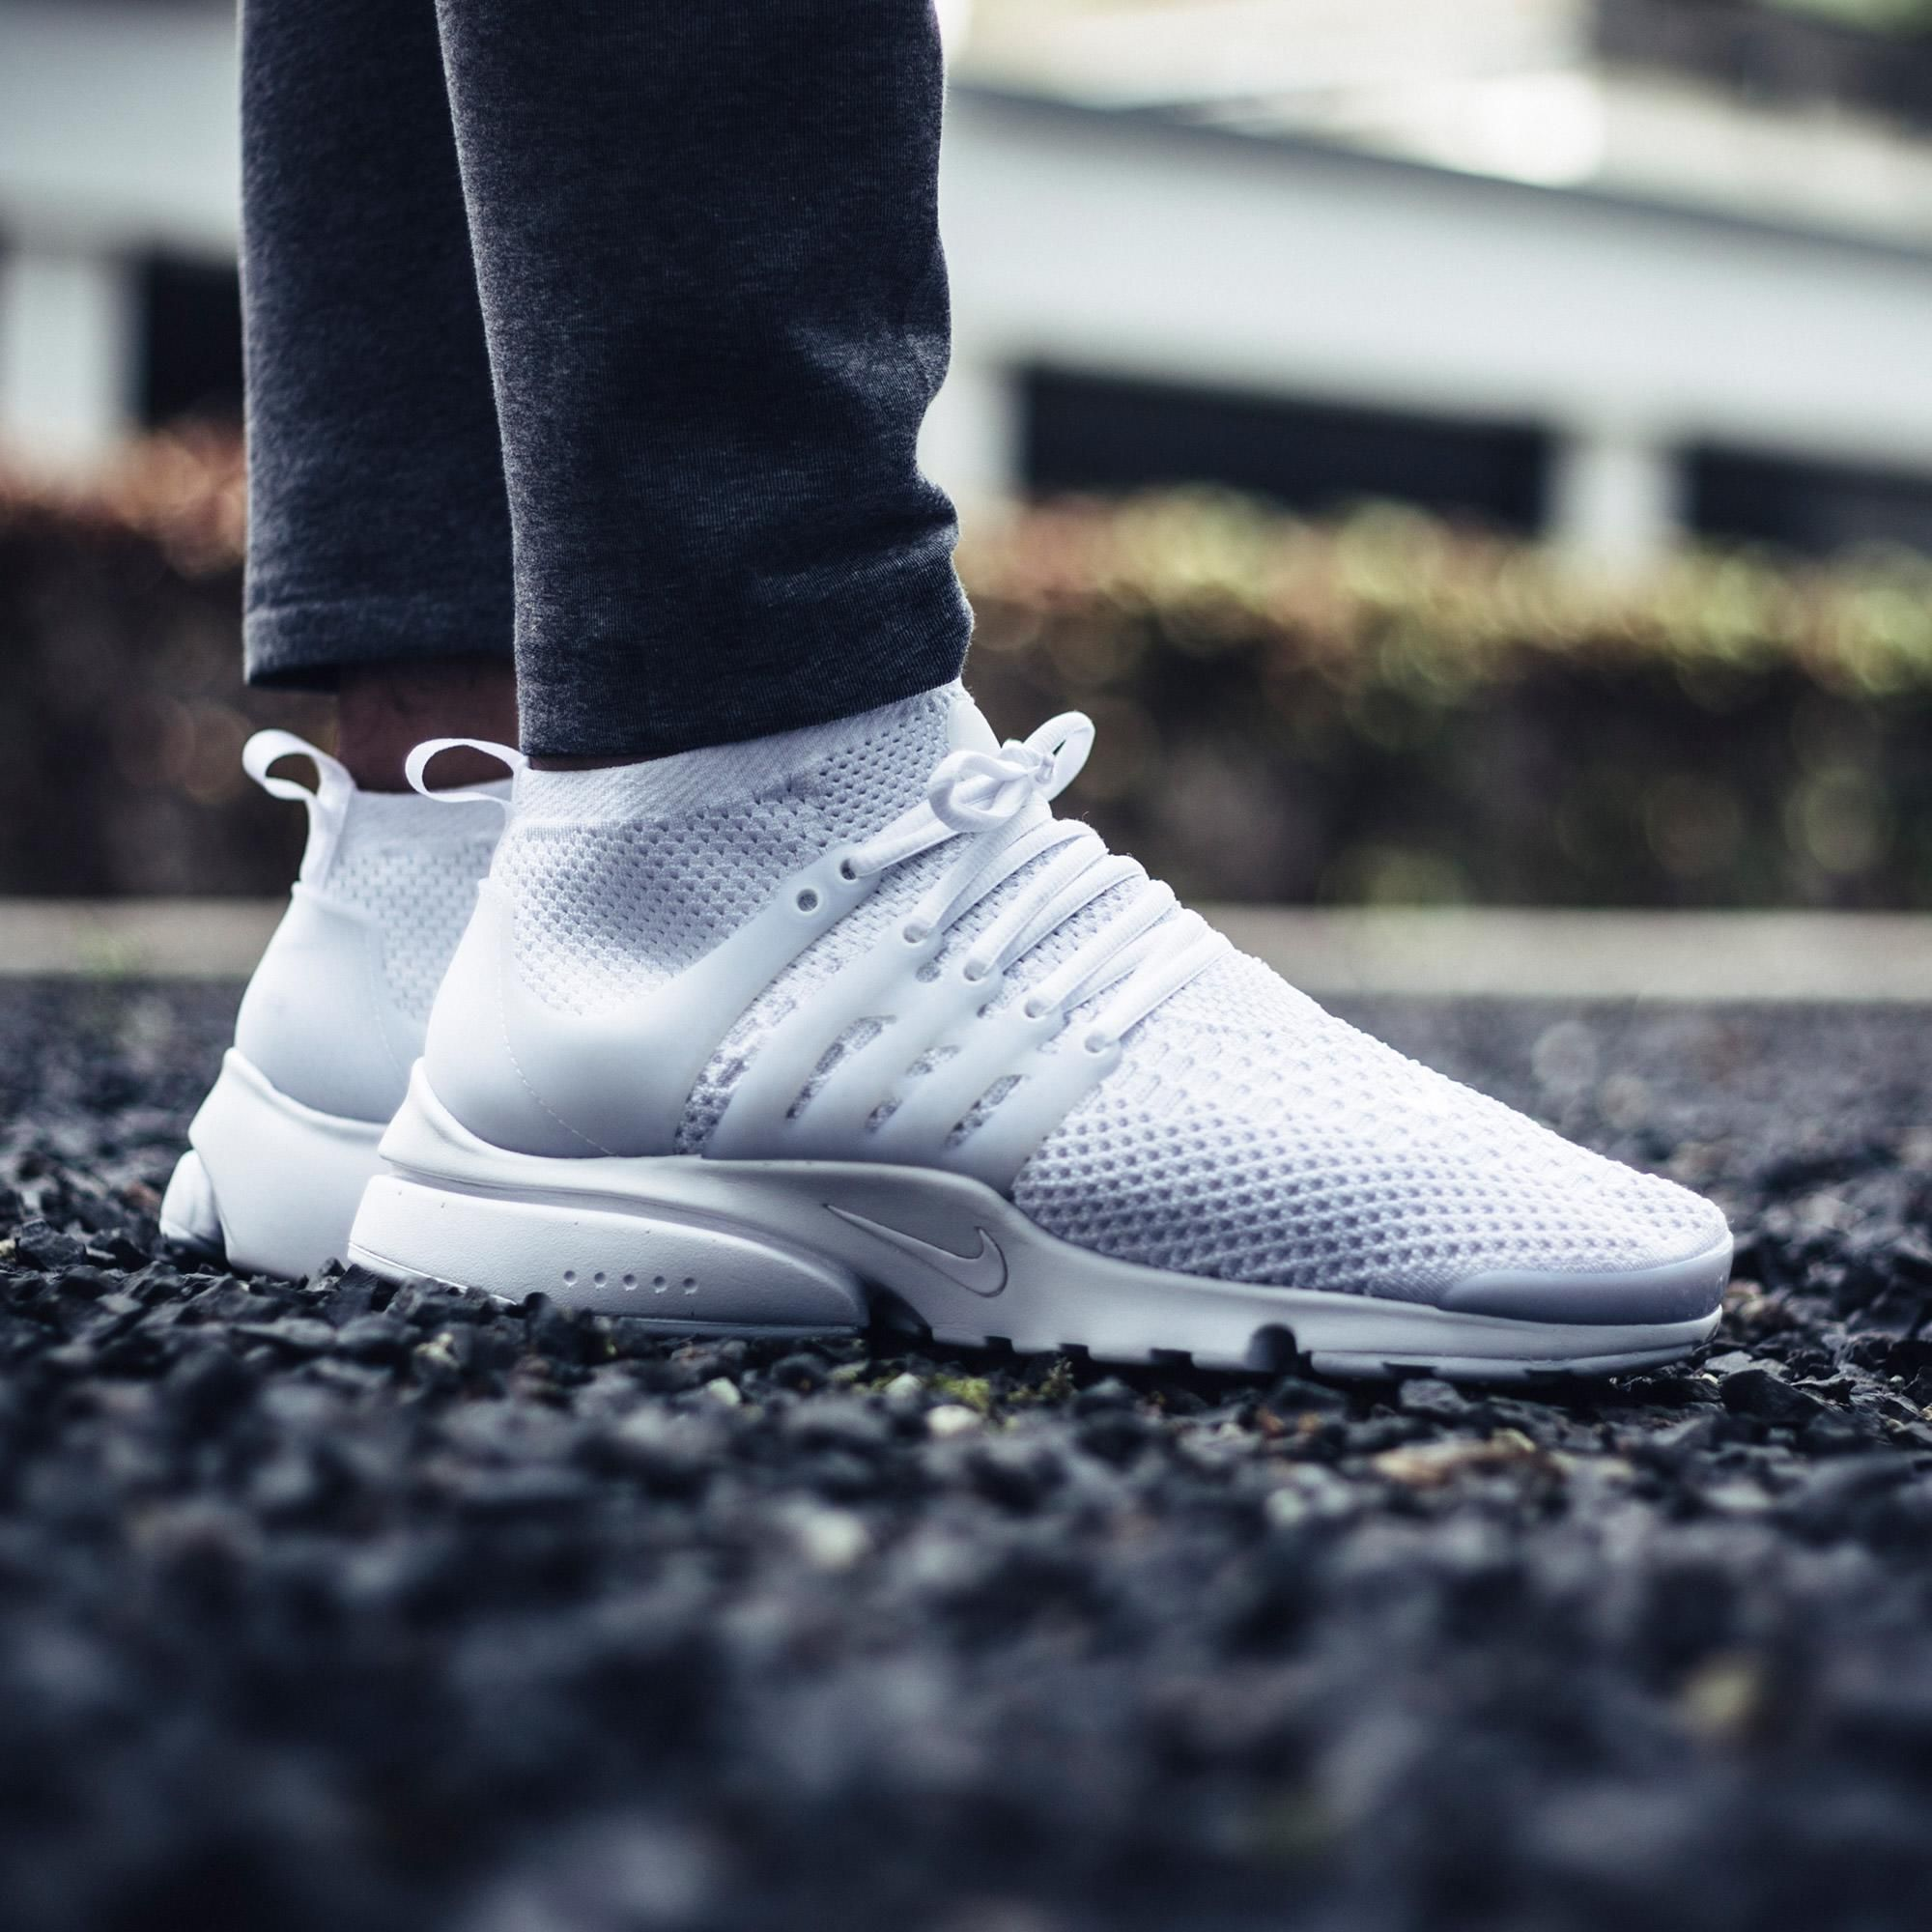 sale retailer 2282b 370b9 An On-Feet Look At The Nike Air Presto Flyknit Ultra White